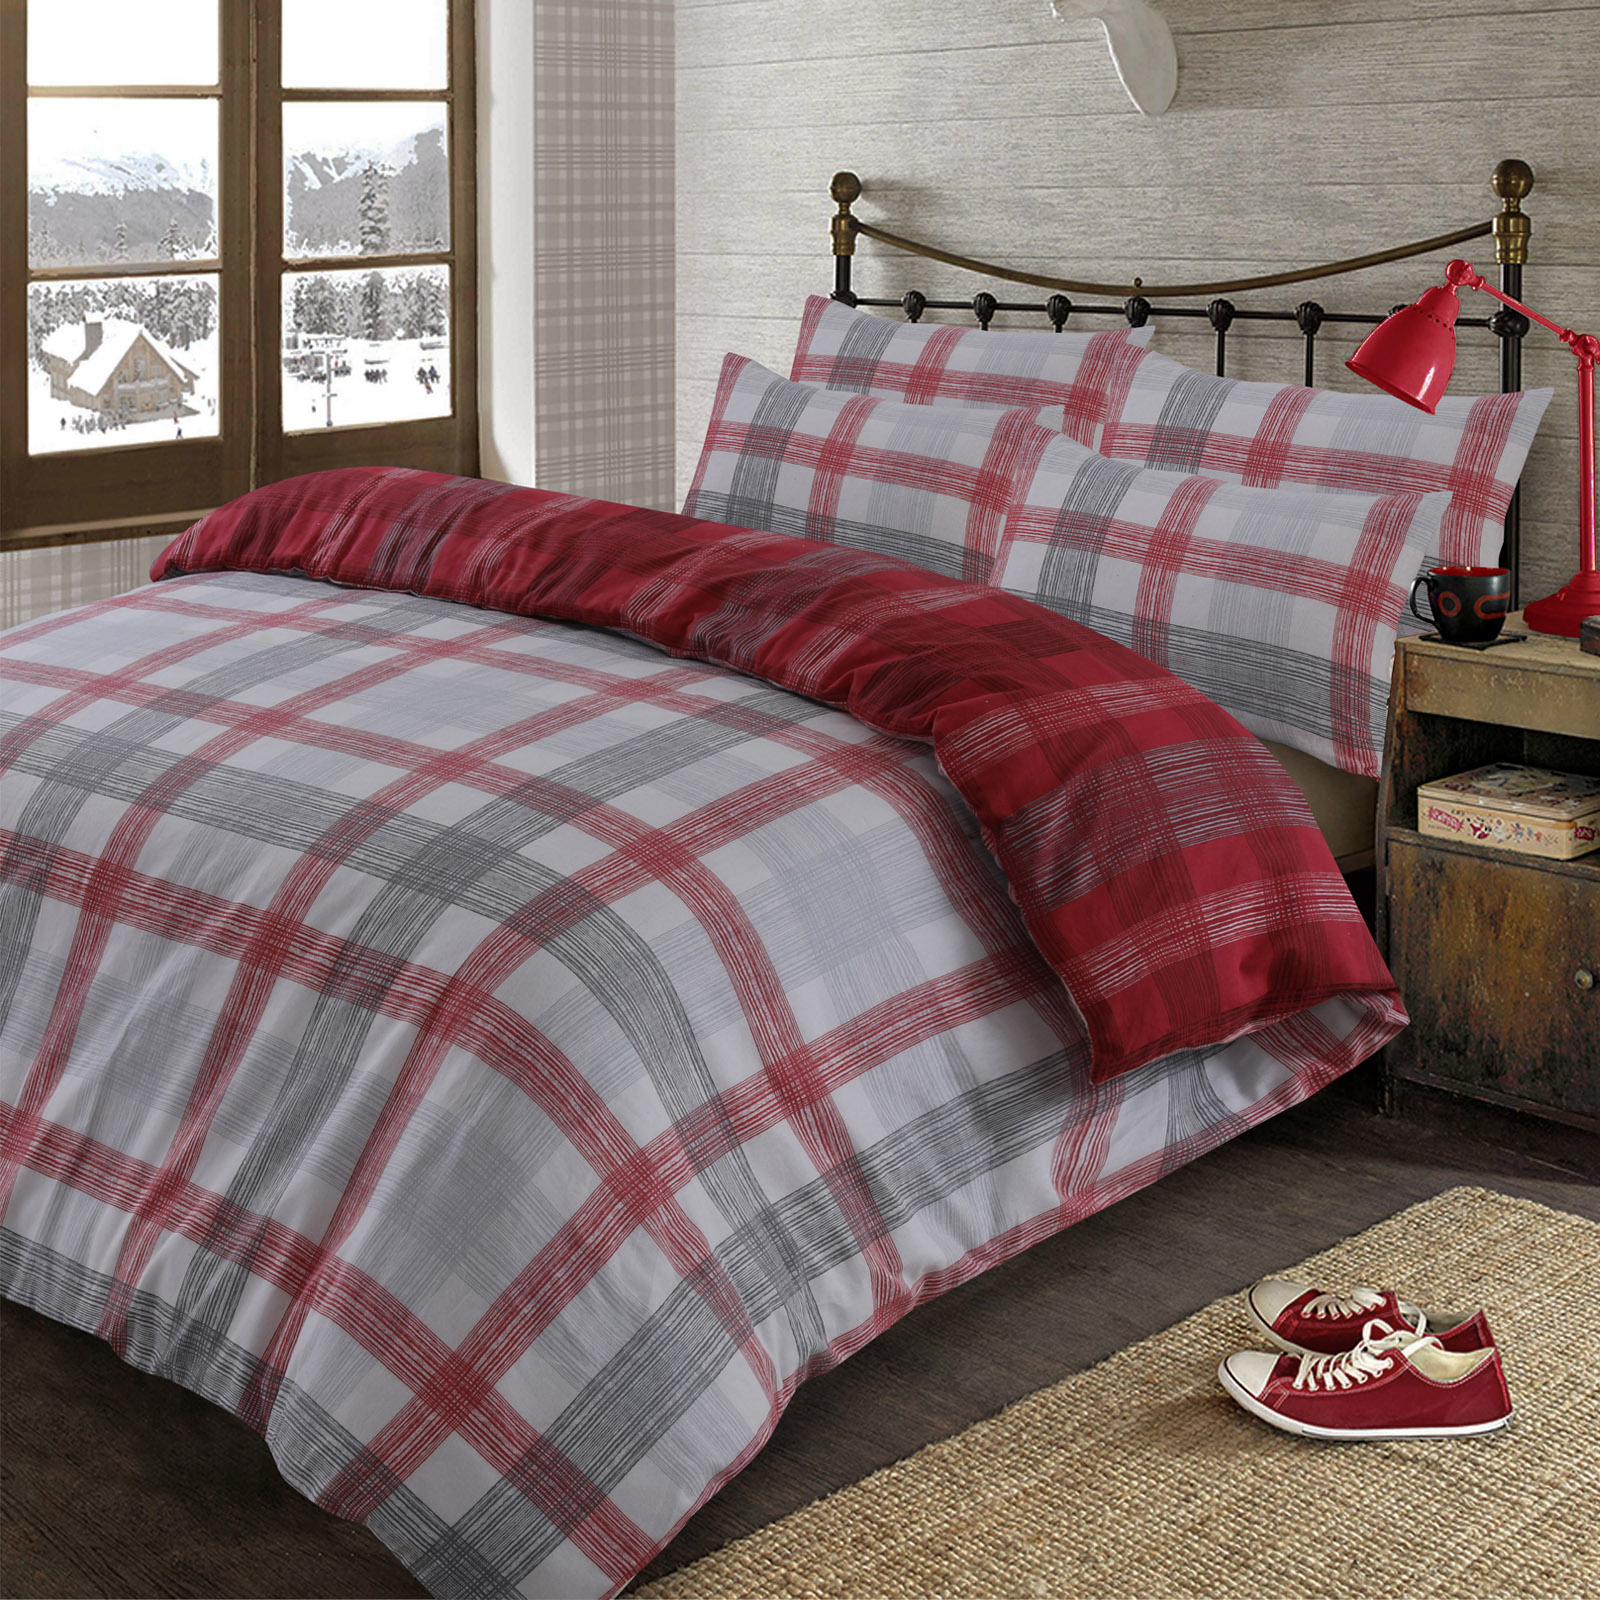 Dreamscene-Boston-Brushed-Cotton-Duvet-Cover-Pillowcase-Flannelette-Bedding-Set